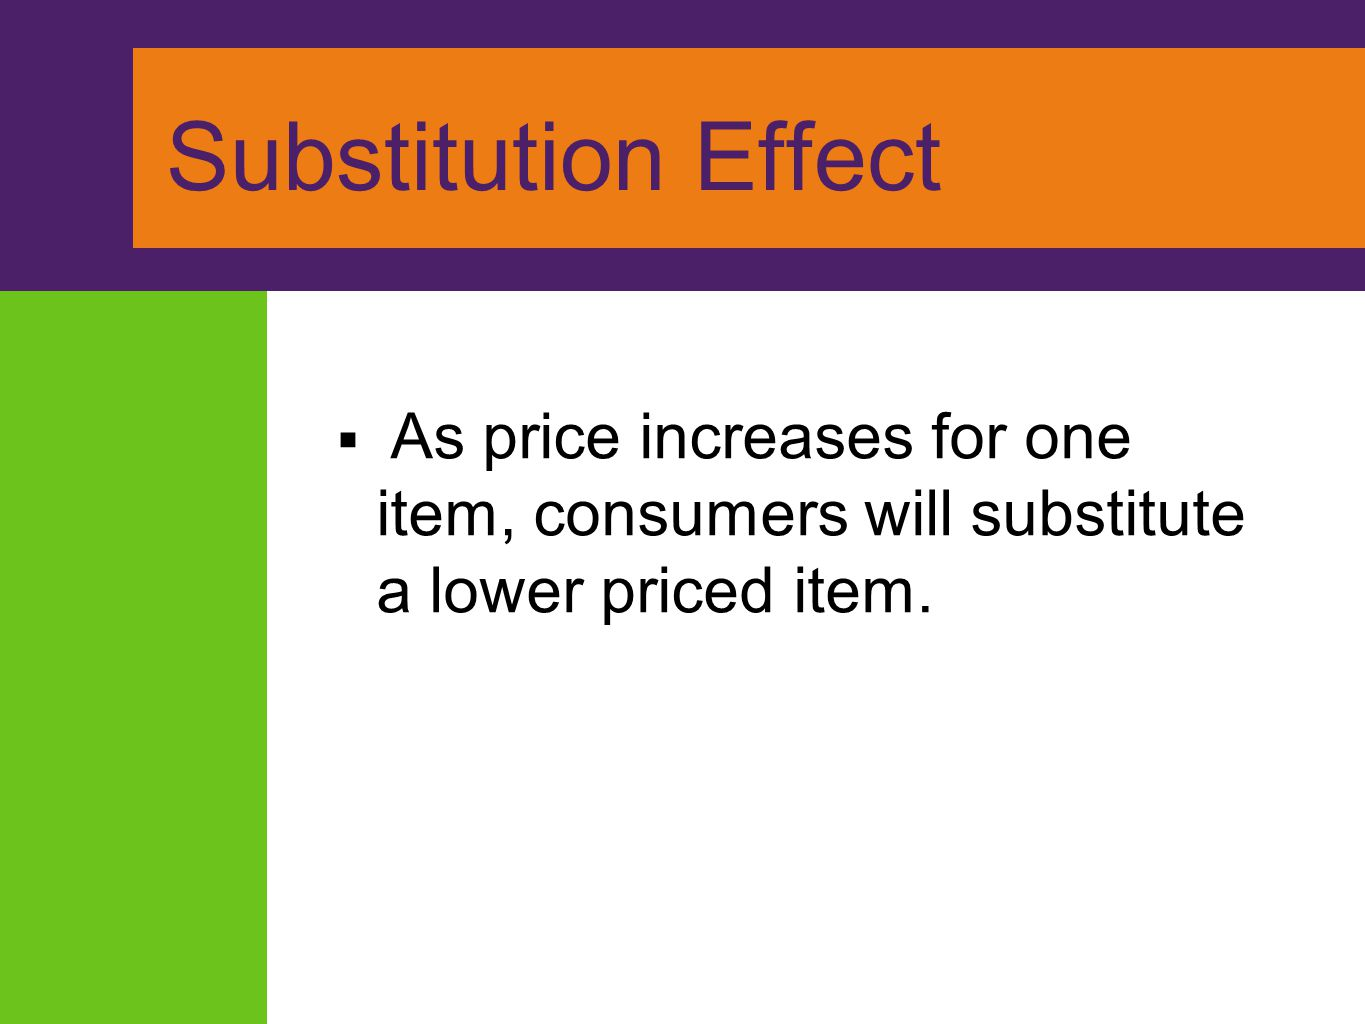 Substitution Effect As price increases for one item, consumers will substitute a lower priced item.